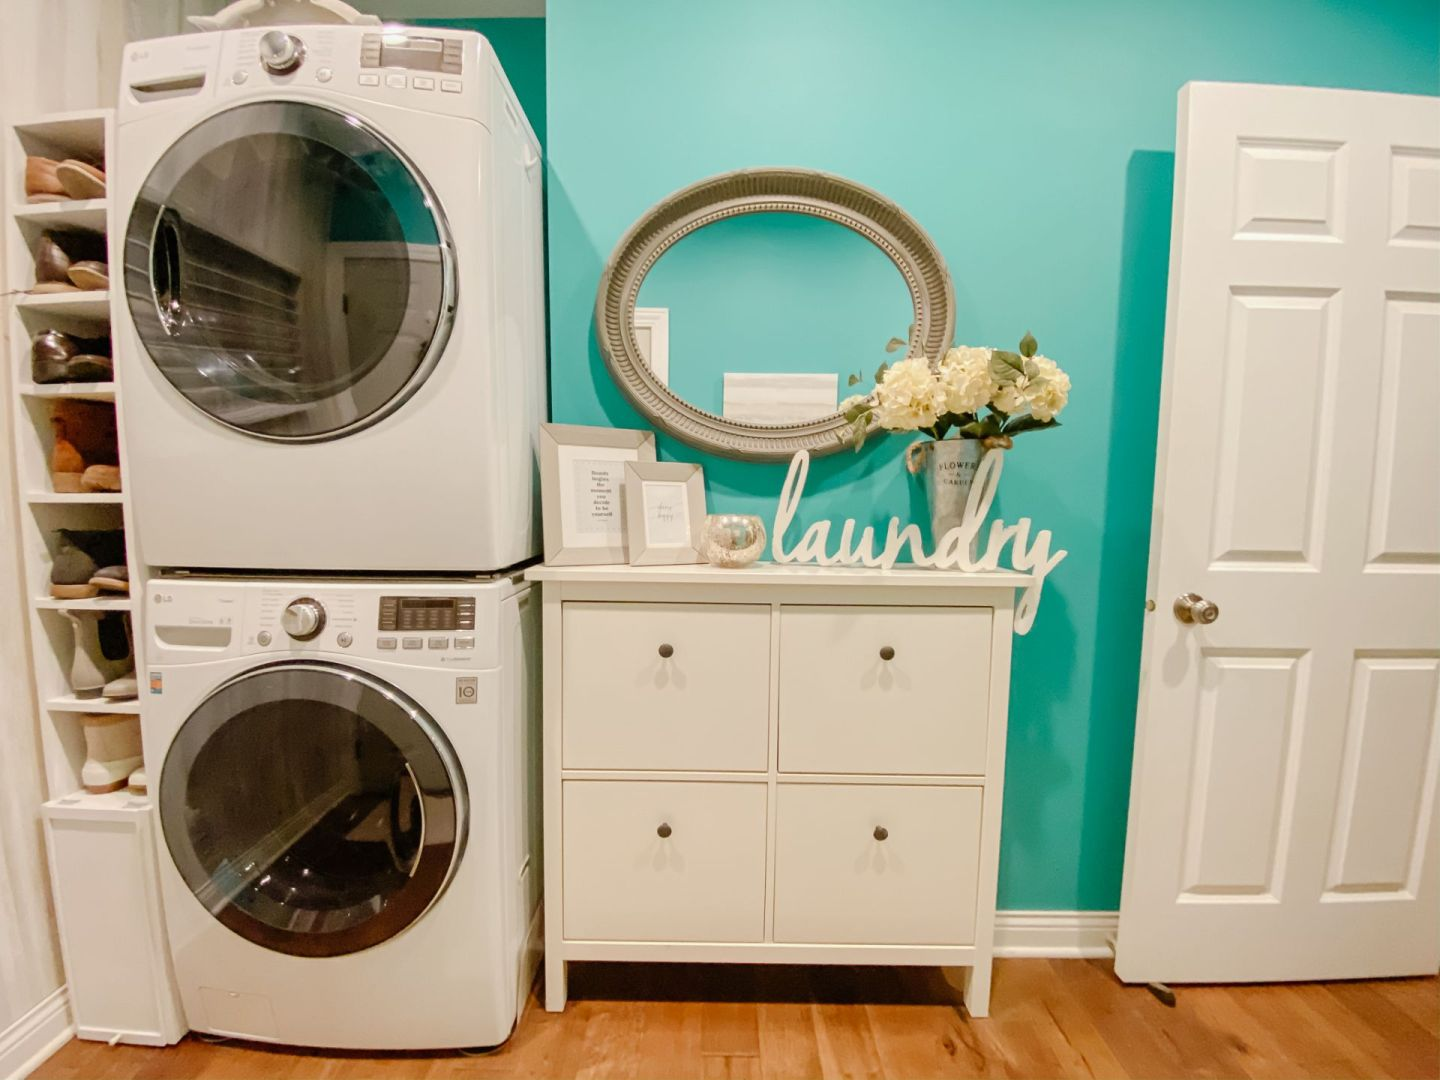 IMG_551Laundry Room2